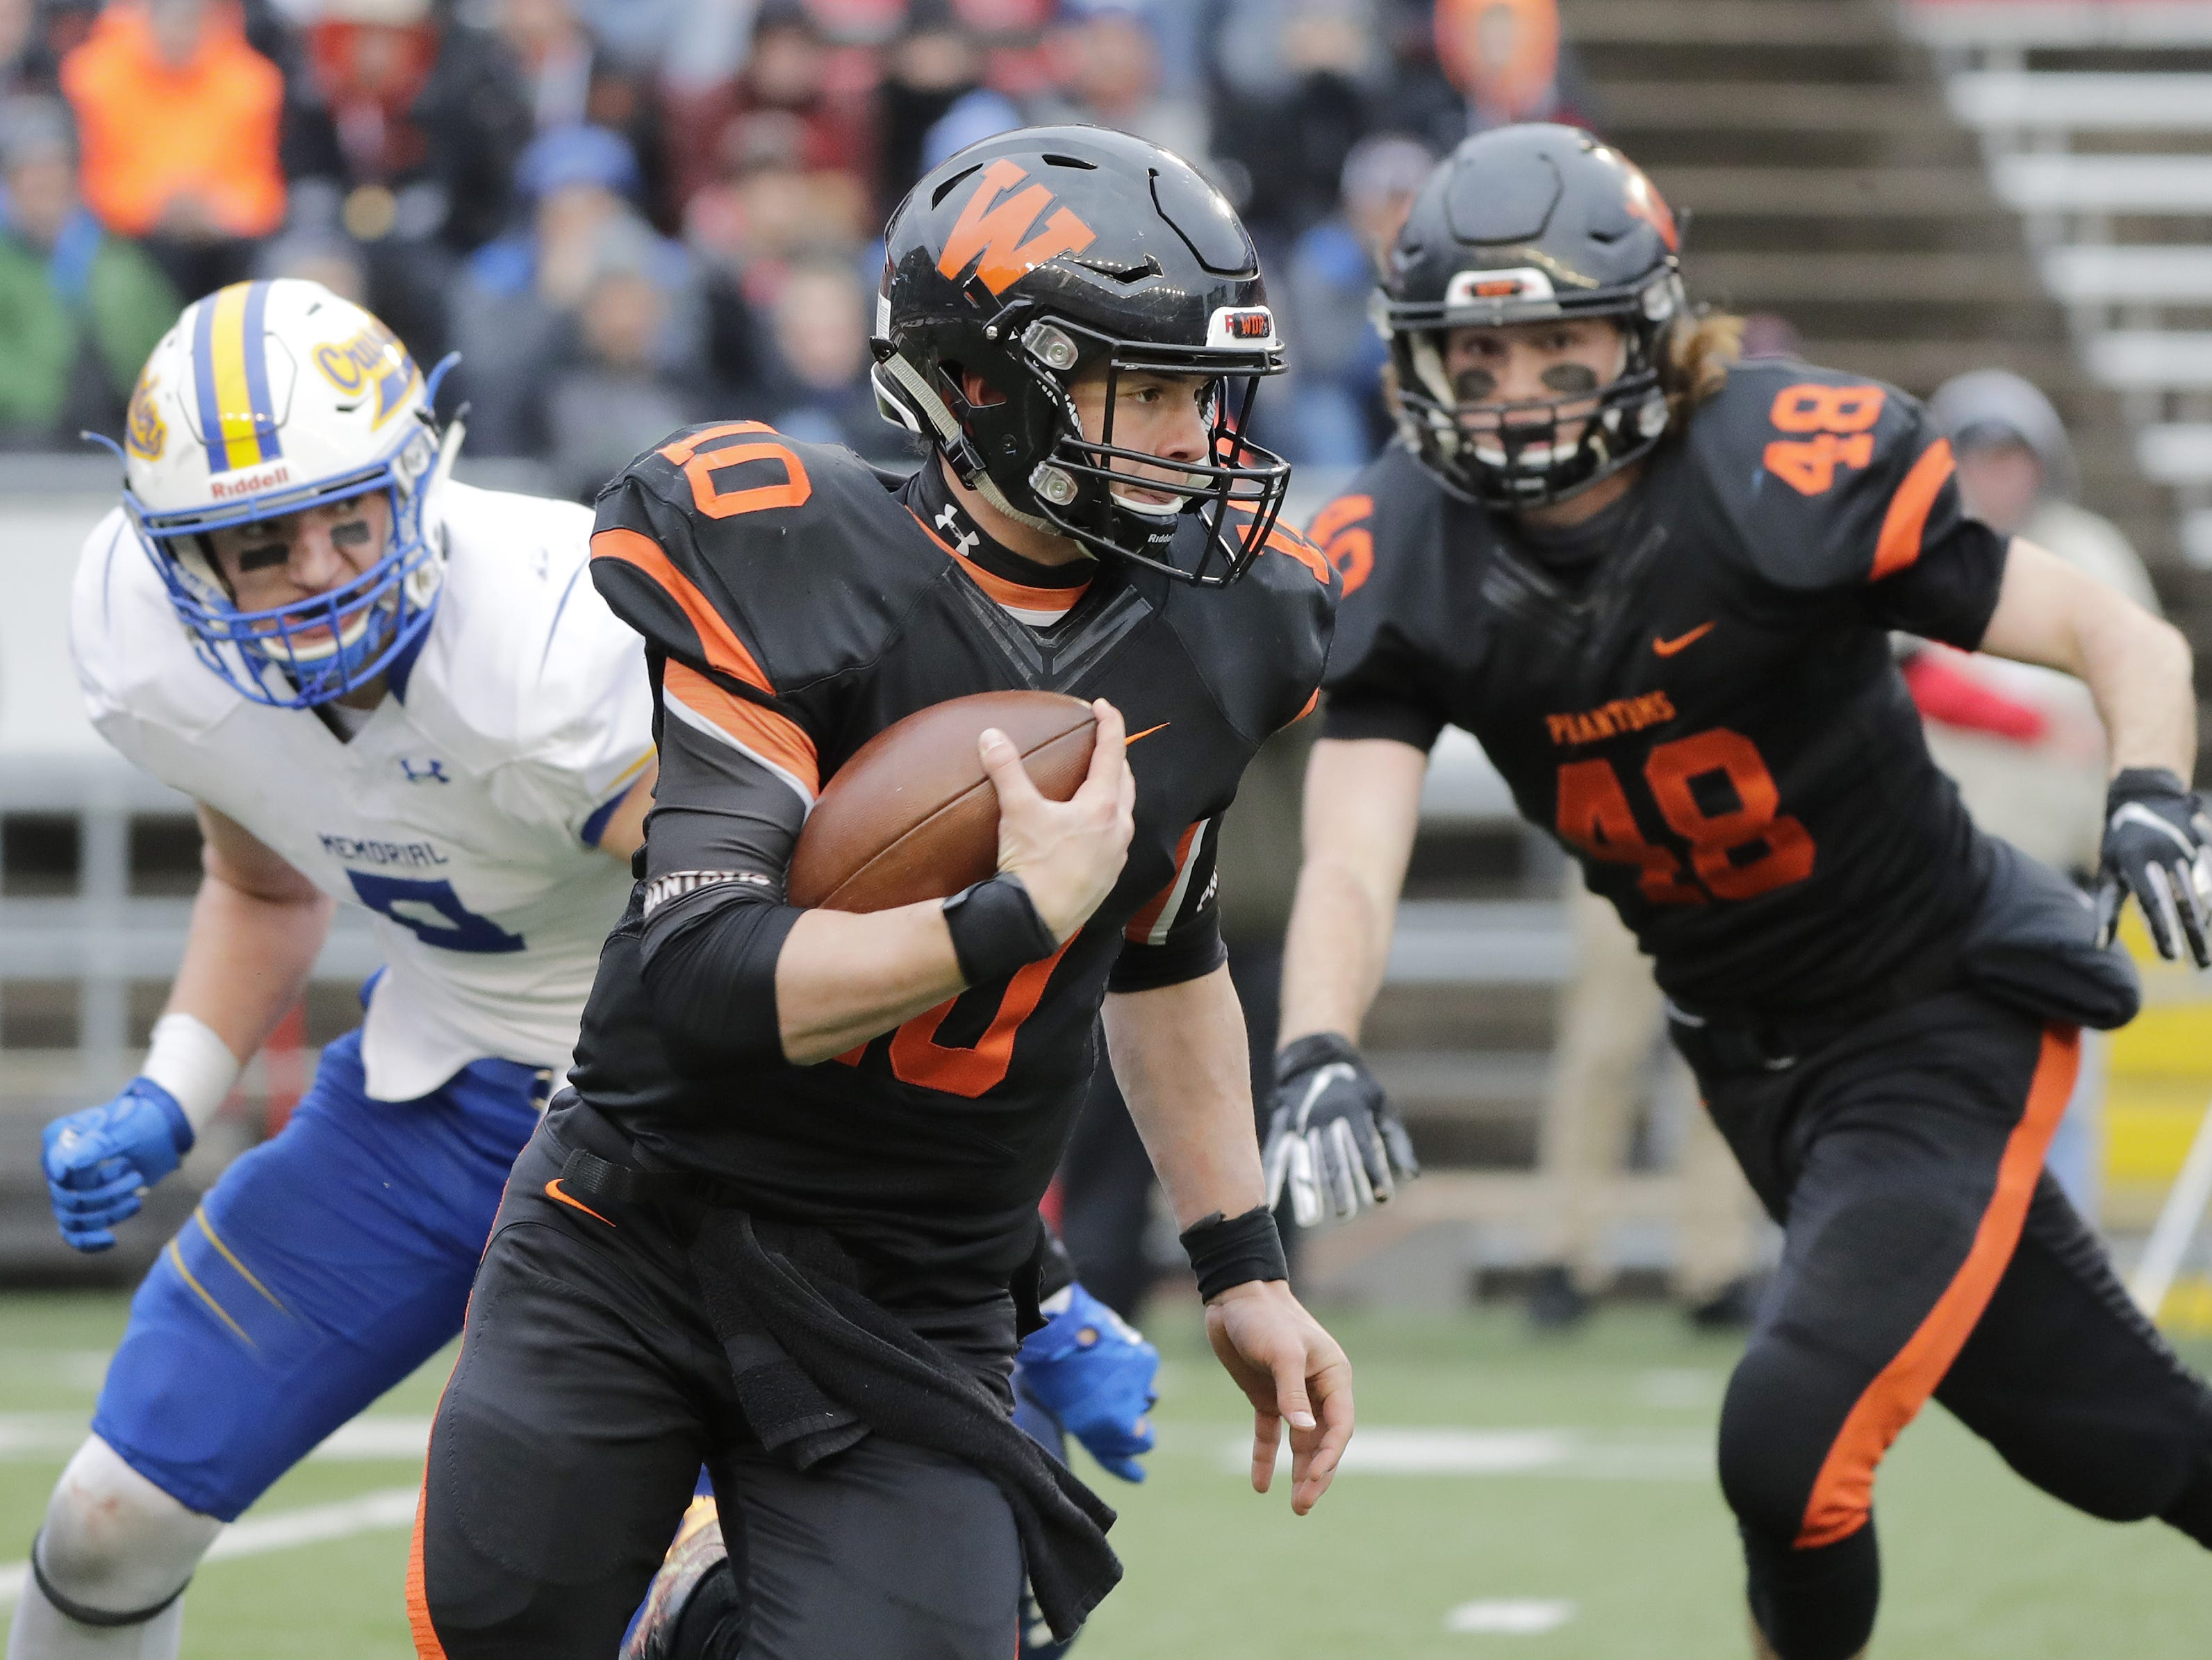 West De Pere's Josh Blount (10) rushes against Catholic Memorial in the WIAA Division 3 championship game at Camp Randall Stadium on Friday, November 16, 2018 in Madison, Wis.